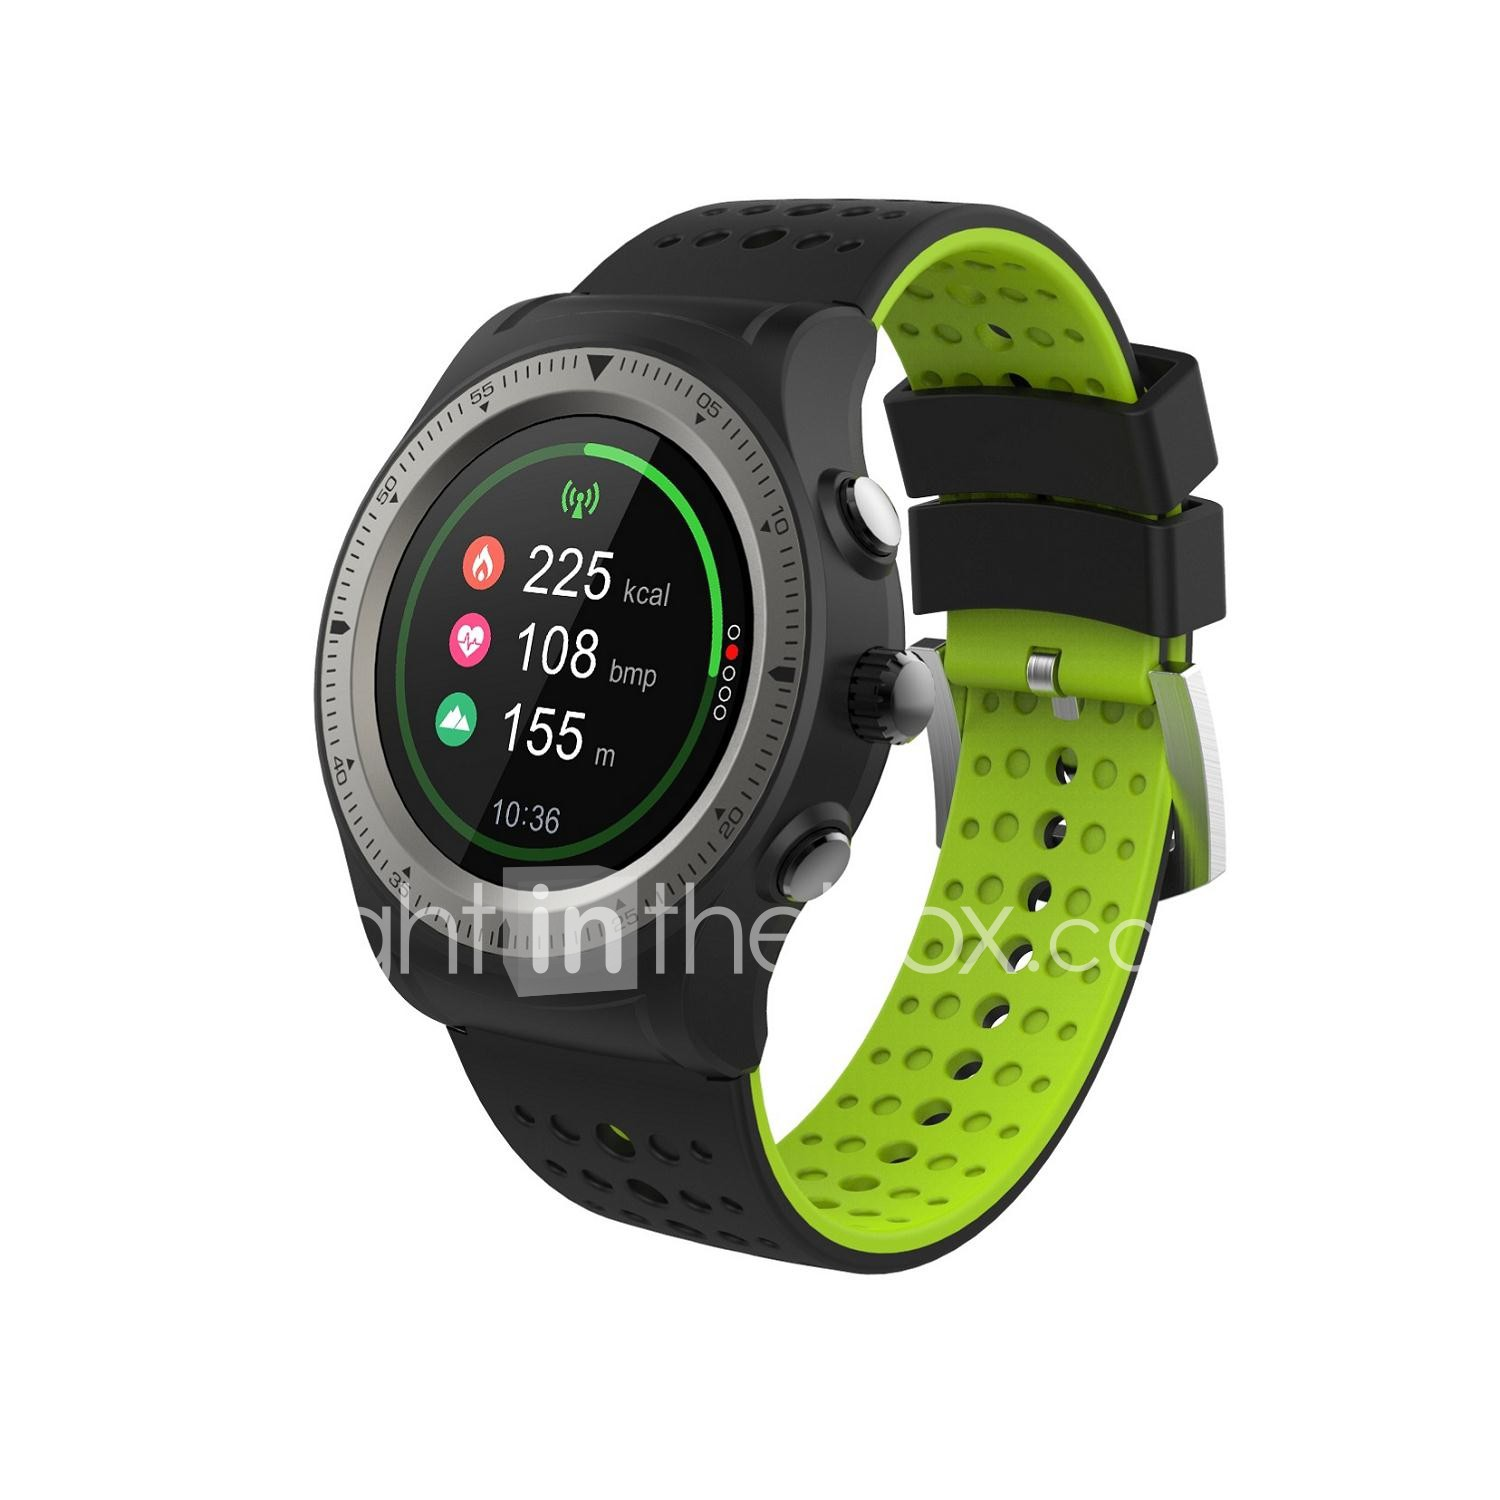 Oplayer SW1304H GPS Smart Watch with Multi-Sport HR 6373701